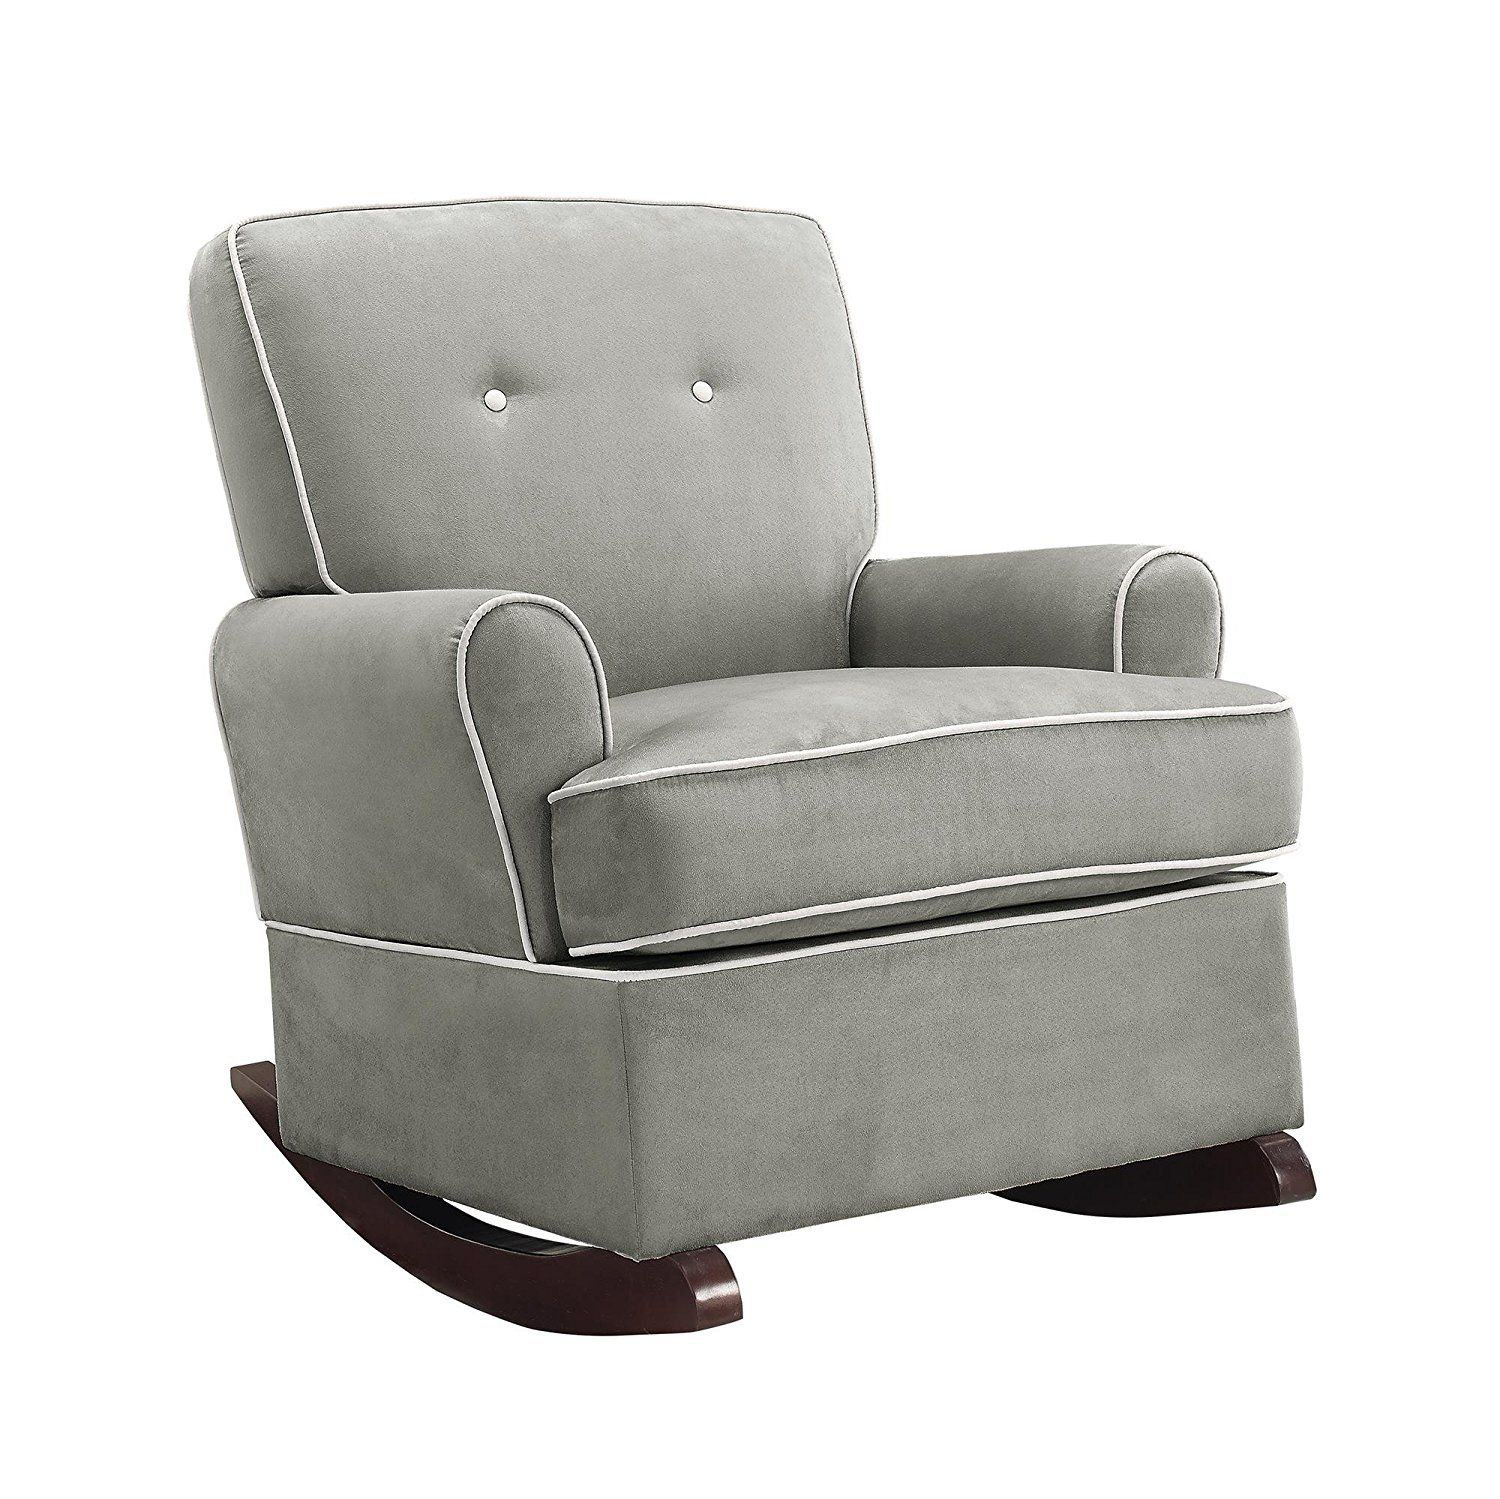 Baby Relax Tinsley Nursery Rocker Chair Gray ** Check out